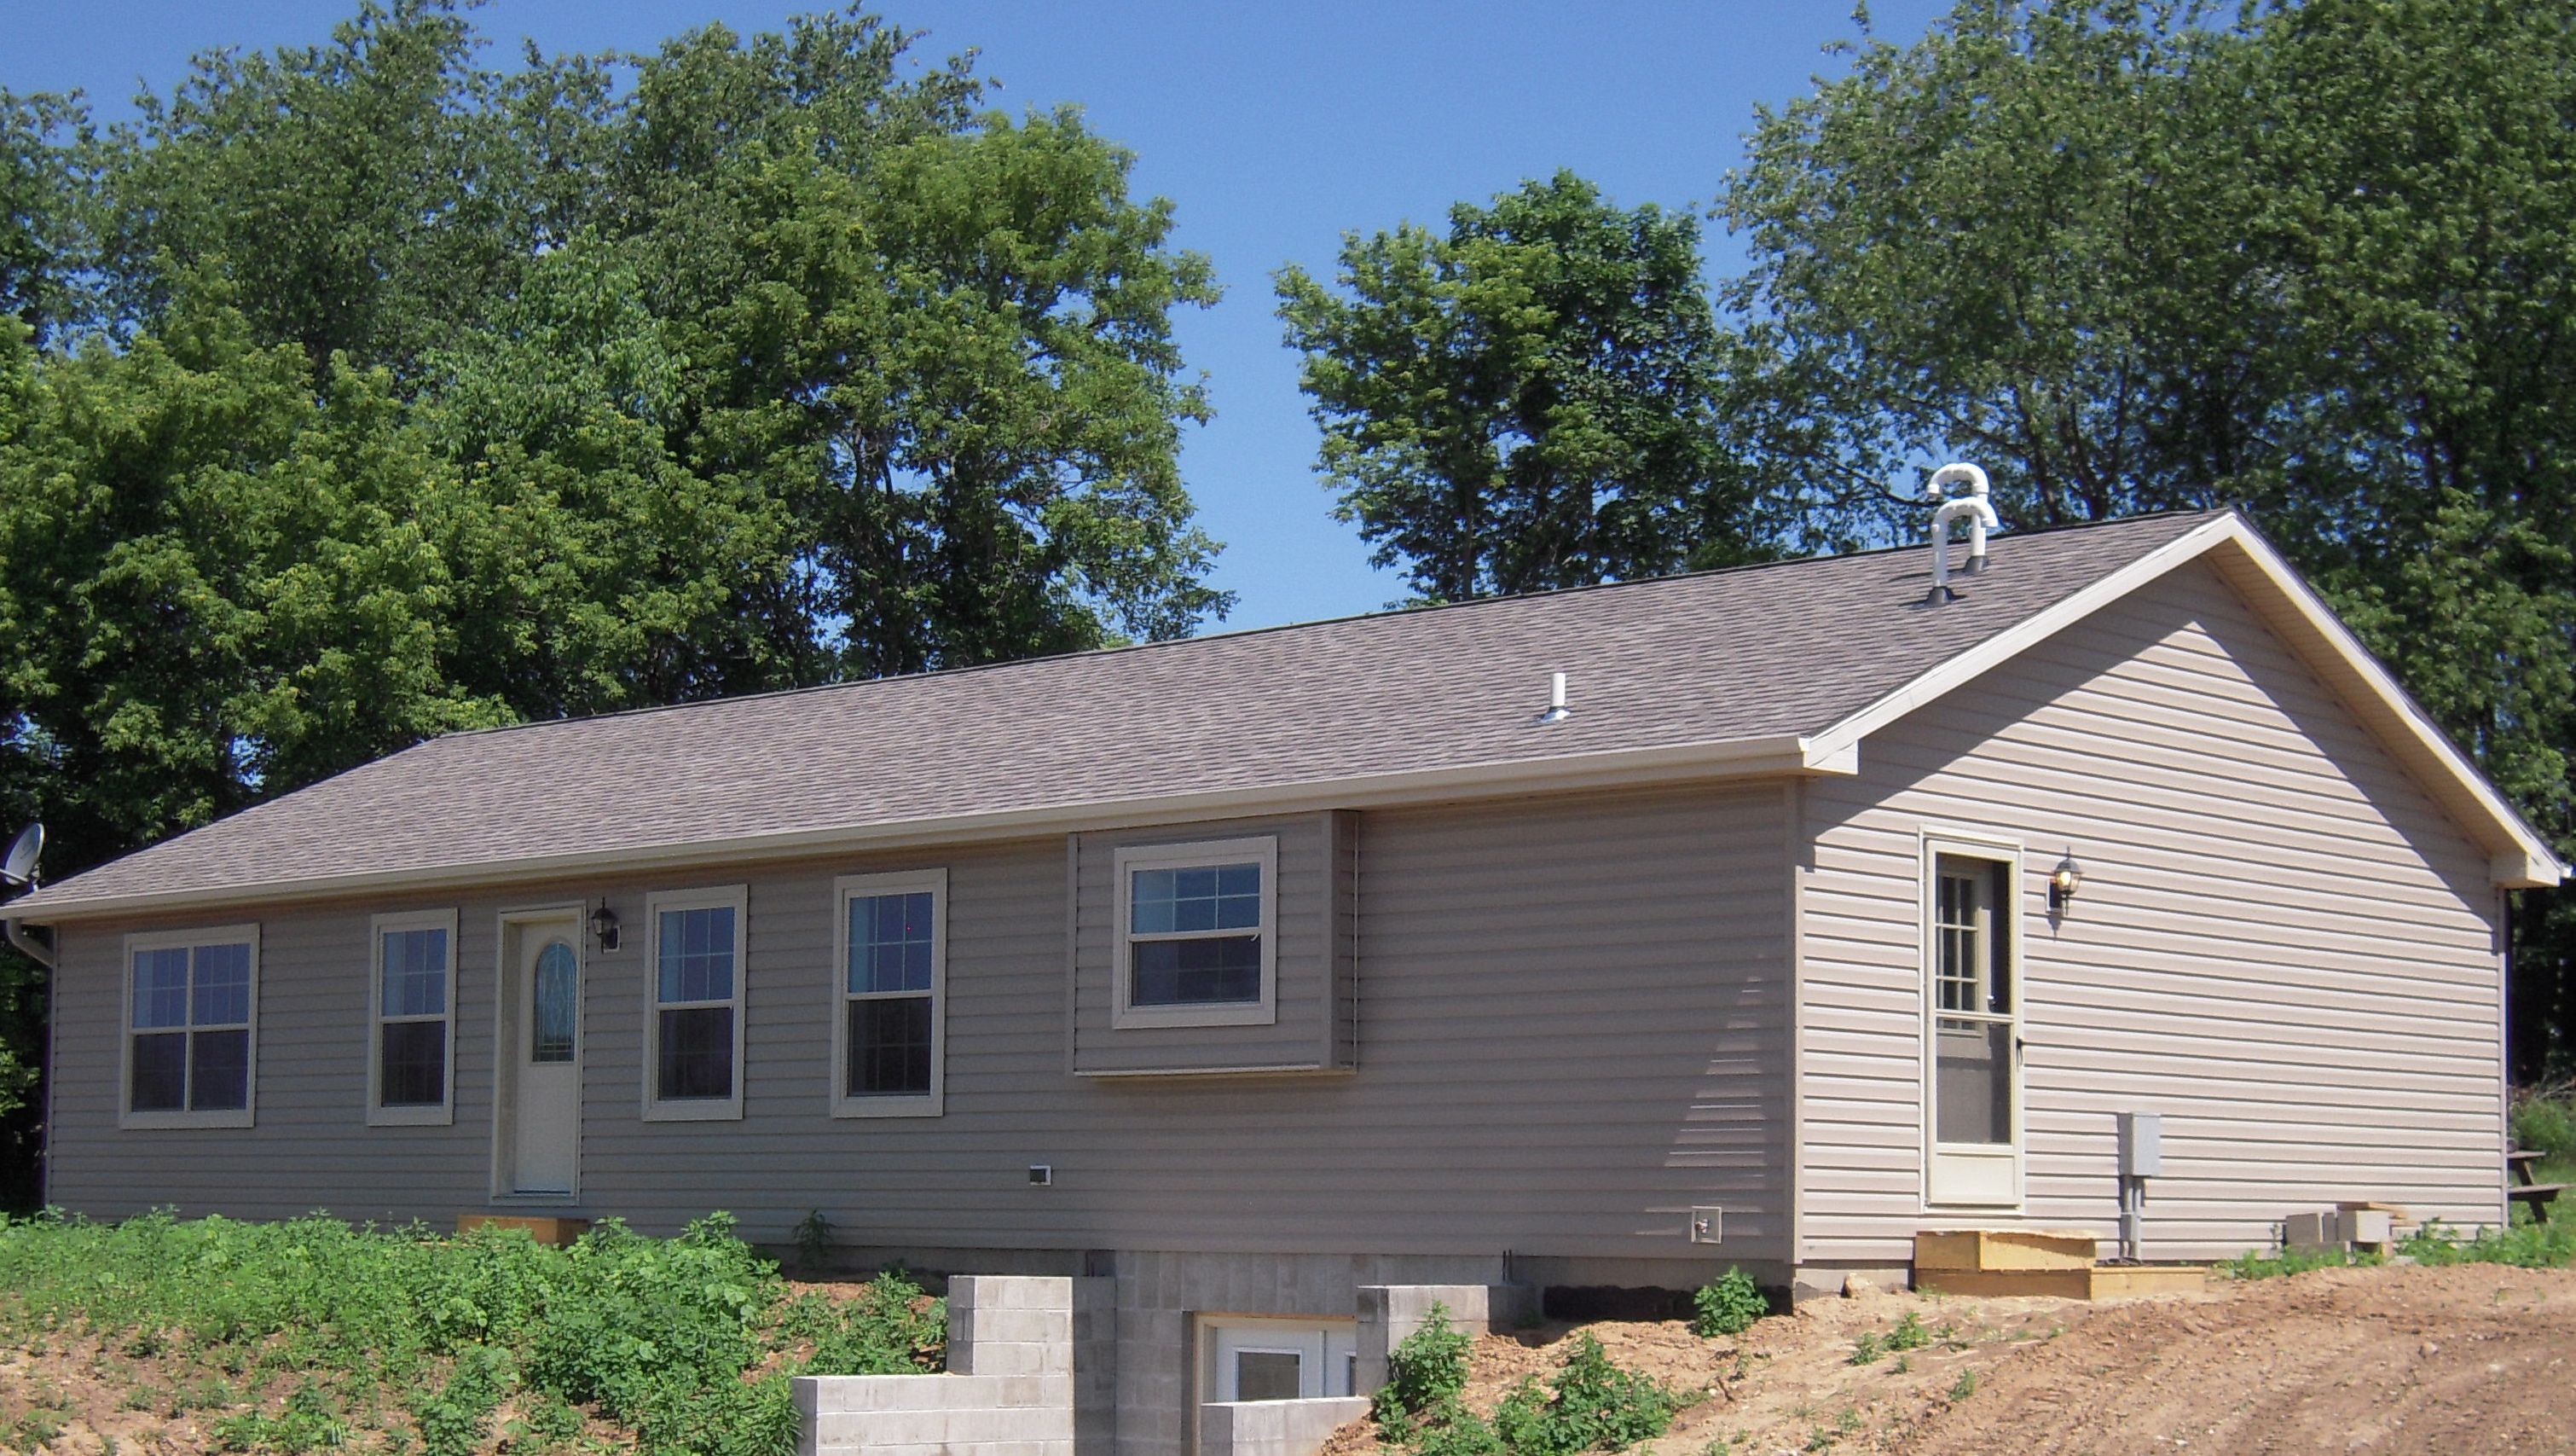 Here S A New 1700 Sq Ft Modular Home Located Near Lyons Mi The